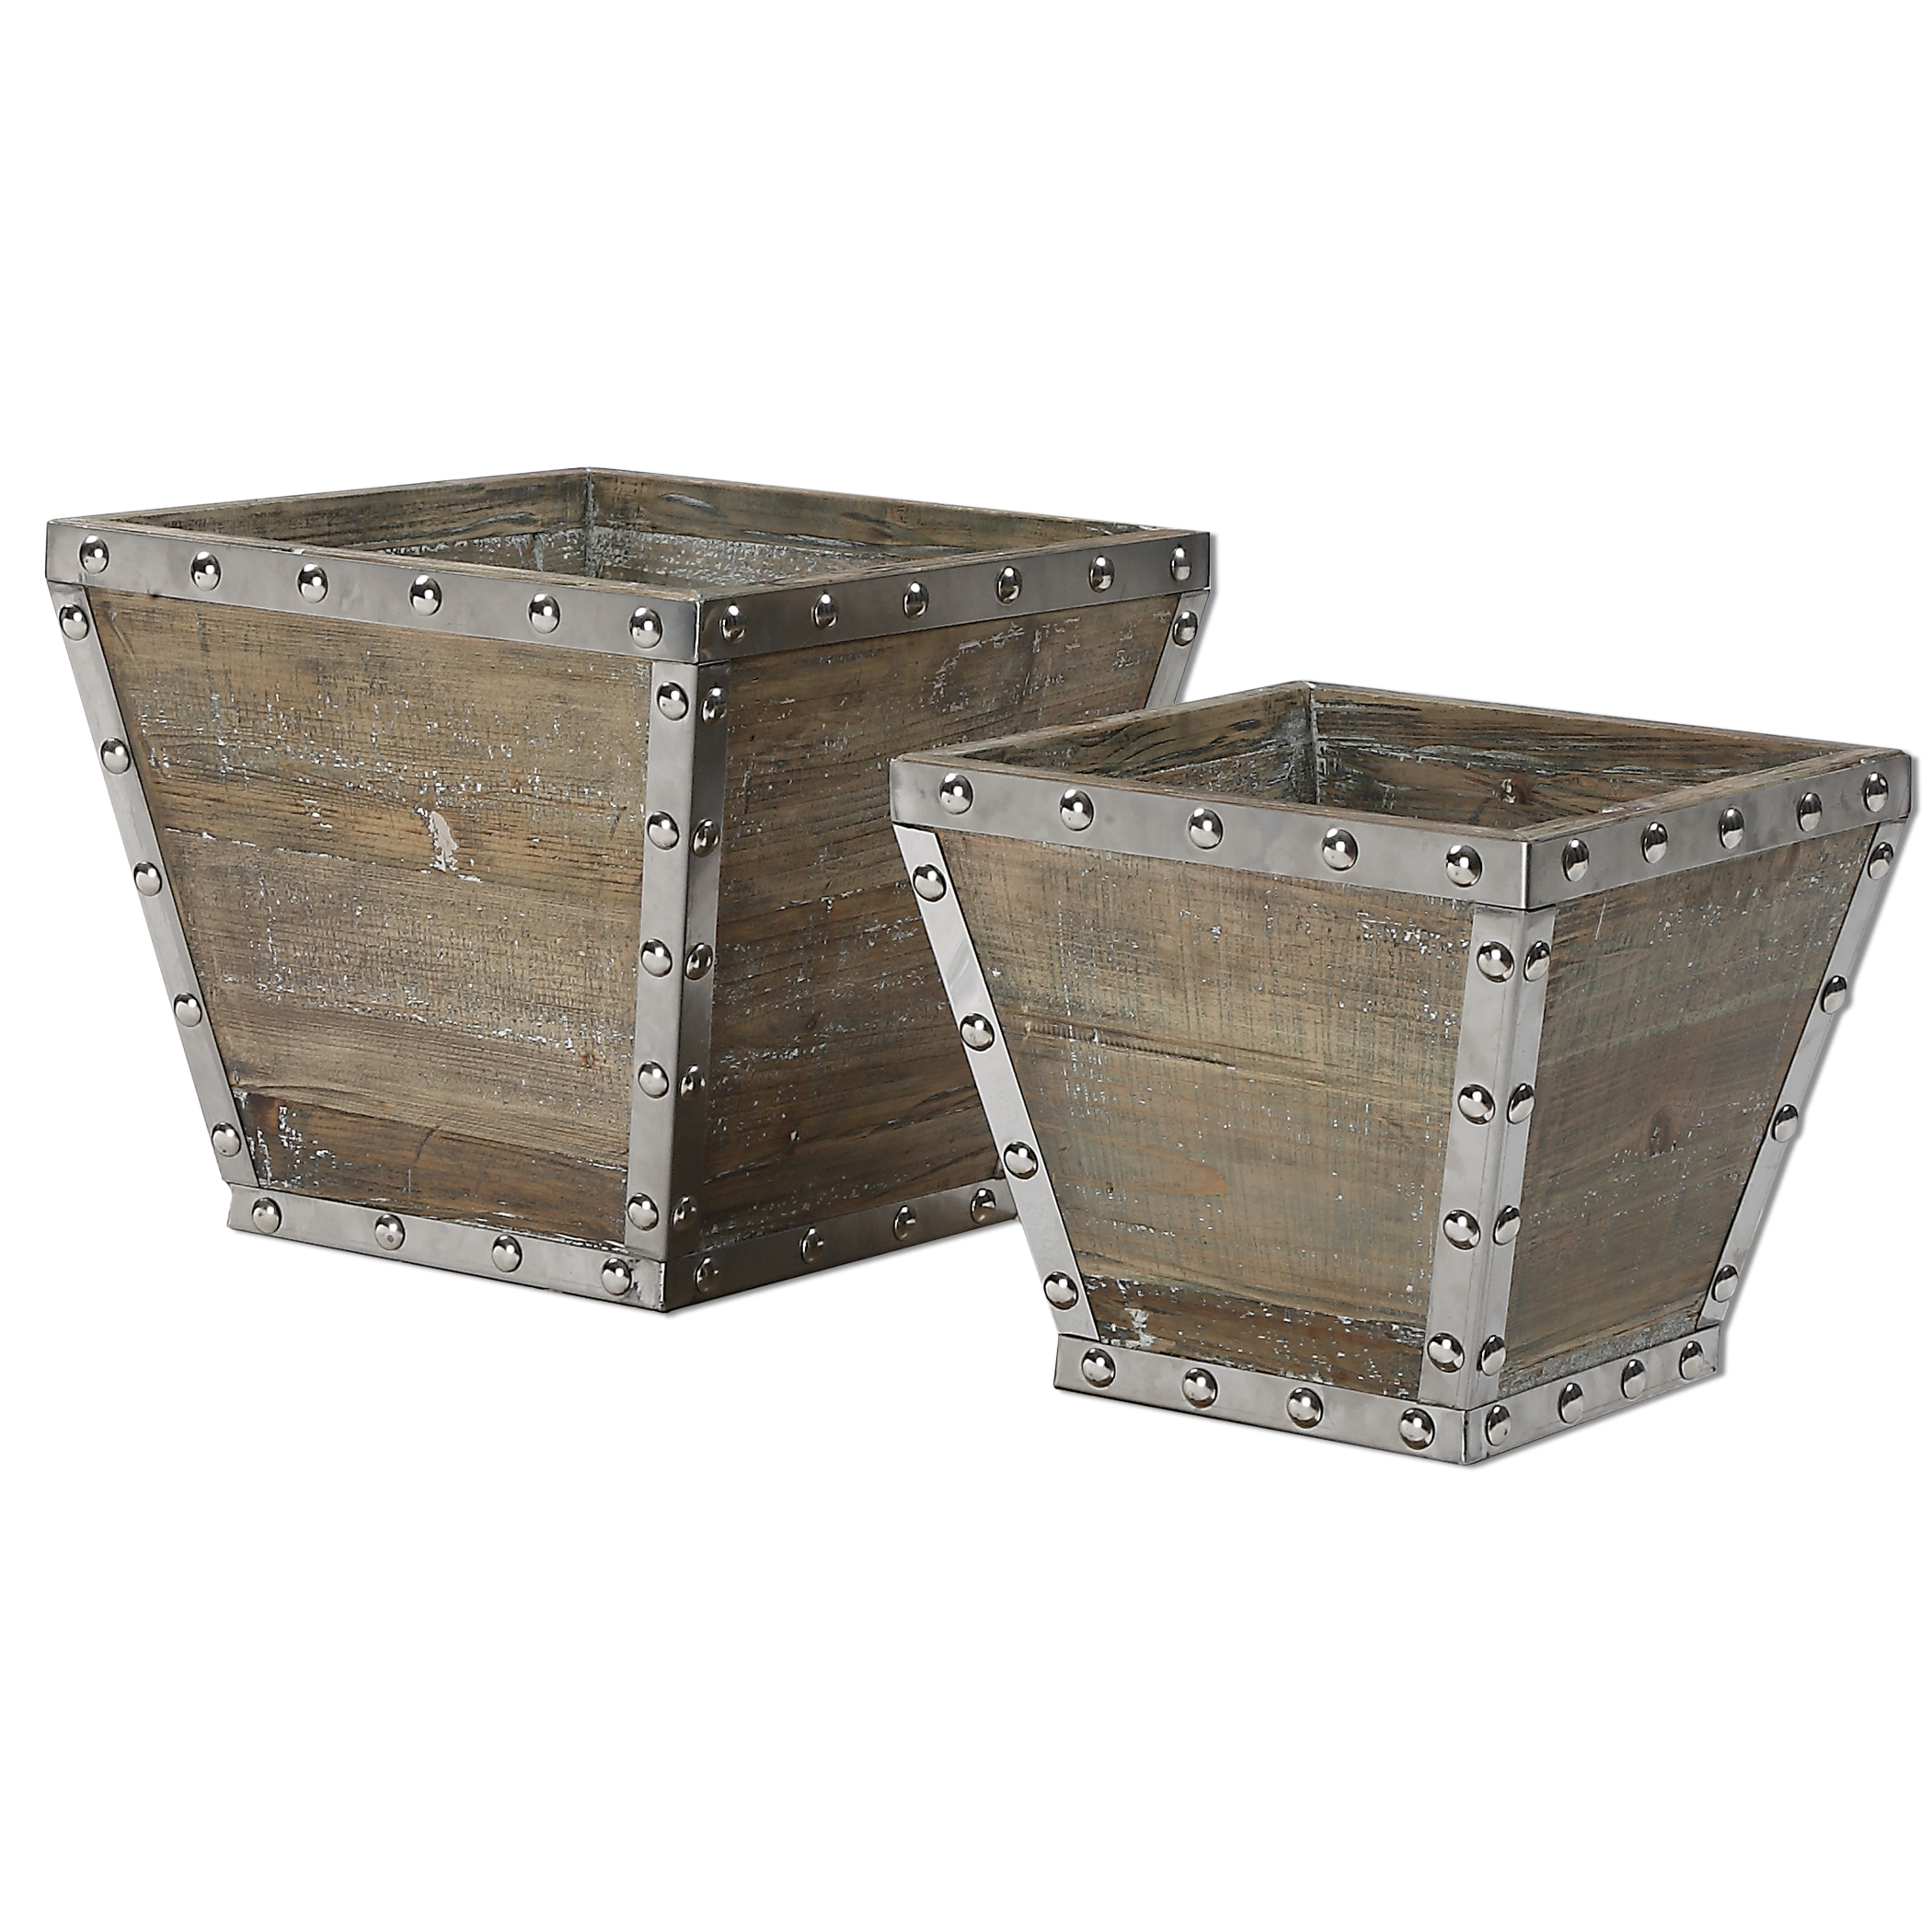 Uttermost Accessories Birtle Wood Containers S/2 - Item Number: 20027